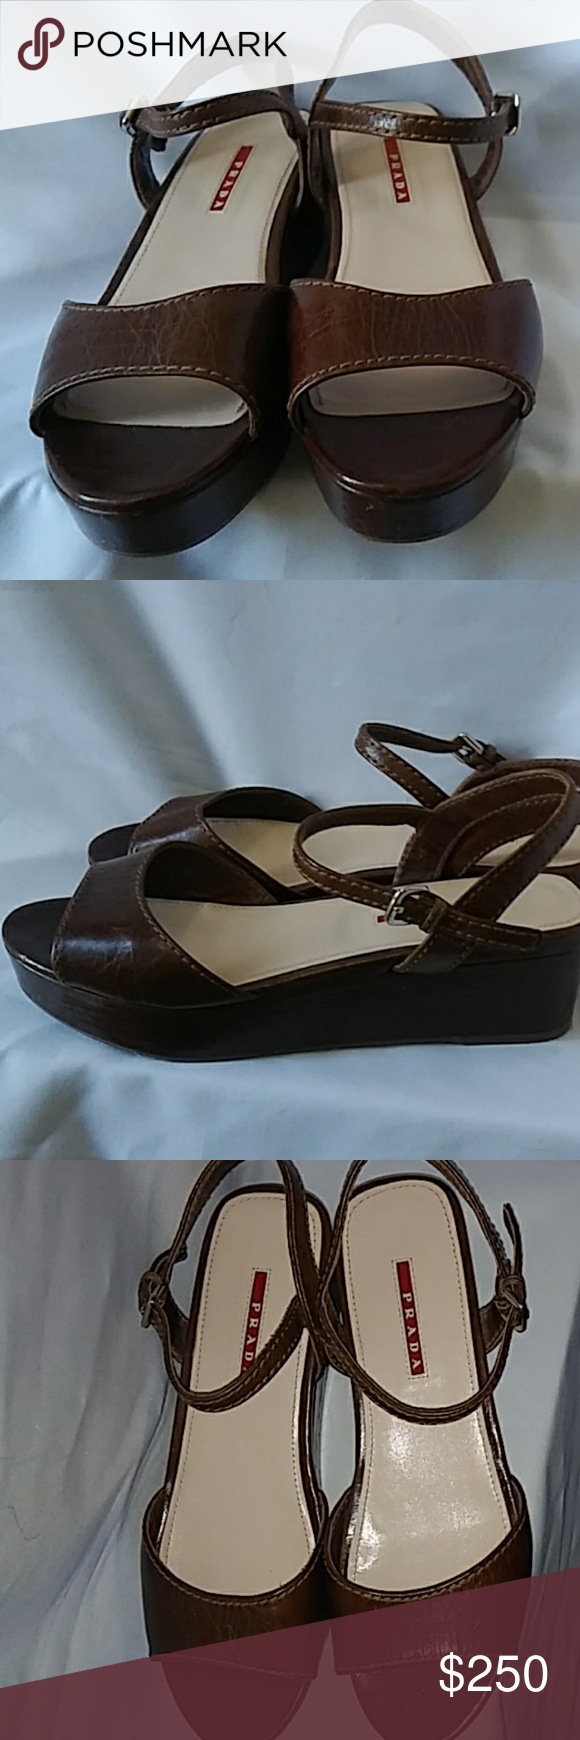 Prada brown wedge sandal Never worn. Size 39 1/2. Brown crinkle leather. Sandal with low wedge. Prada Shoes Wedges #lowwedgesandals